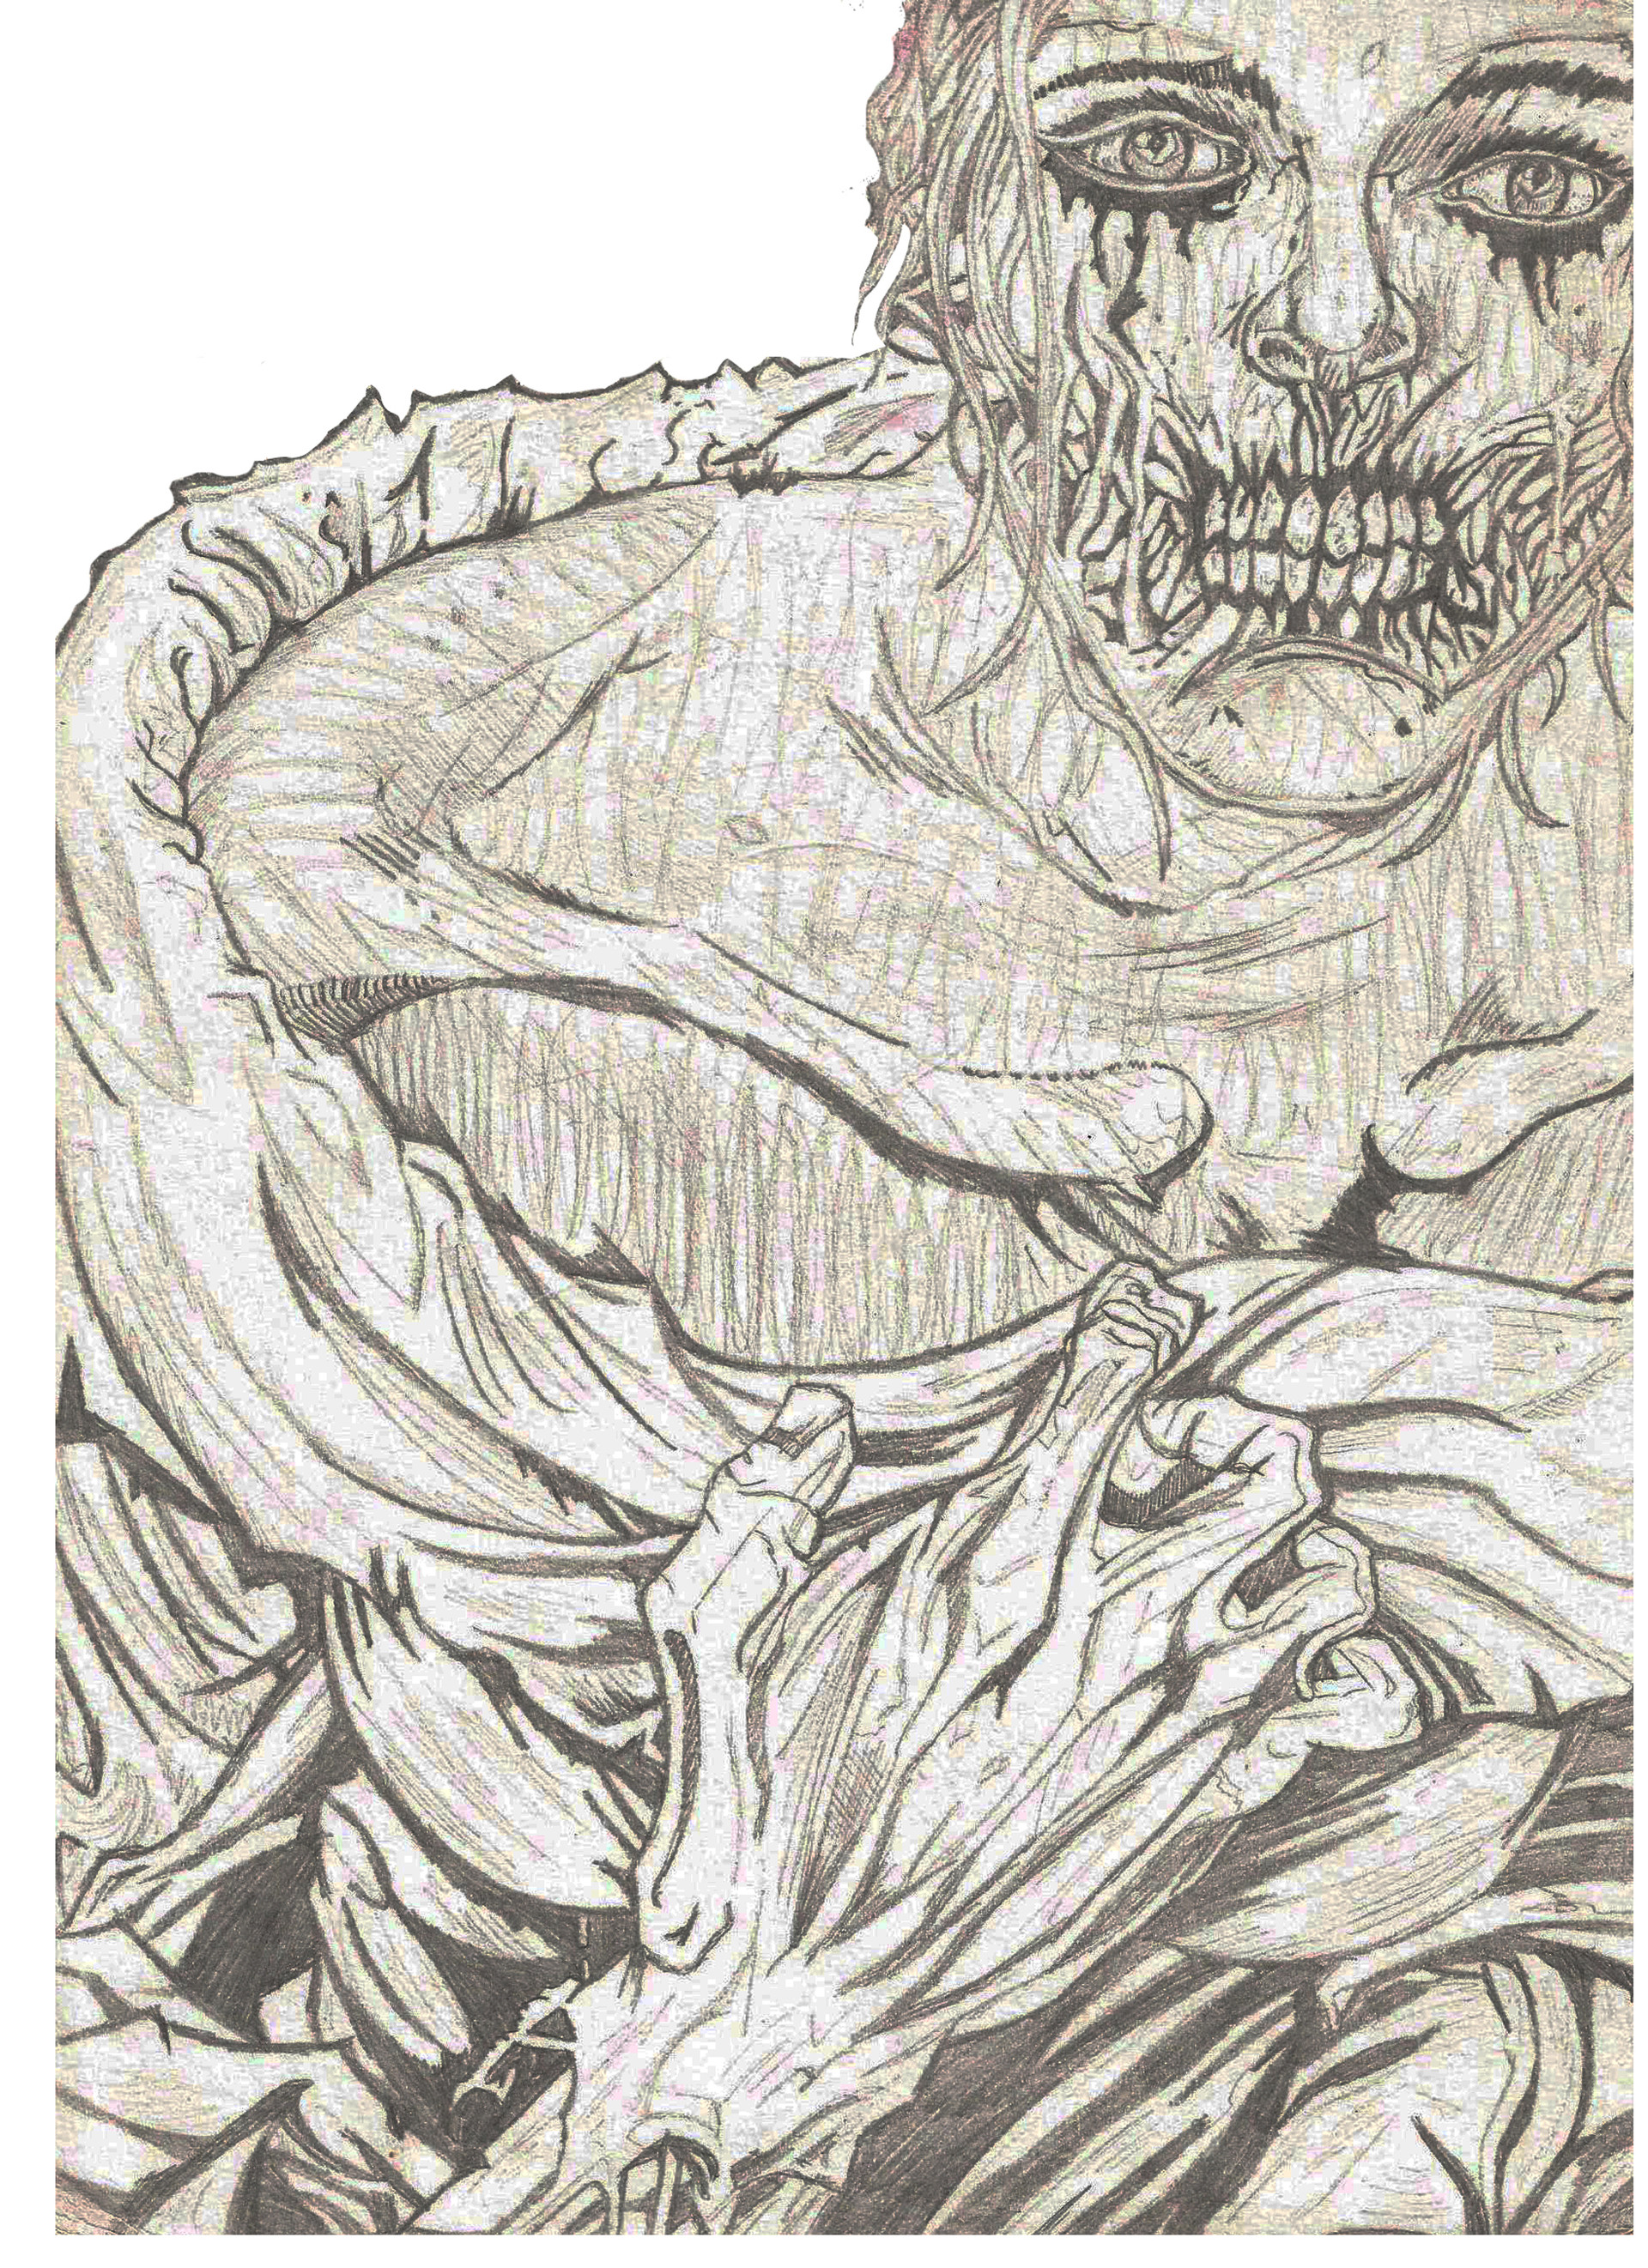 Old zombie pencil drawing